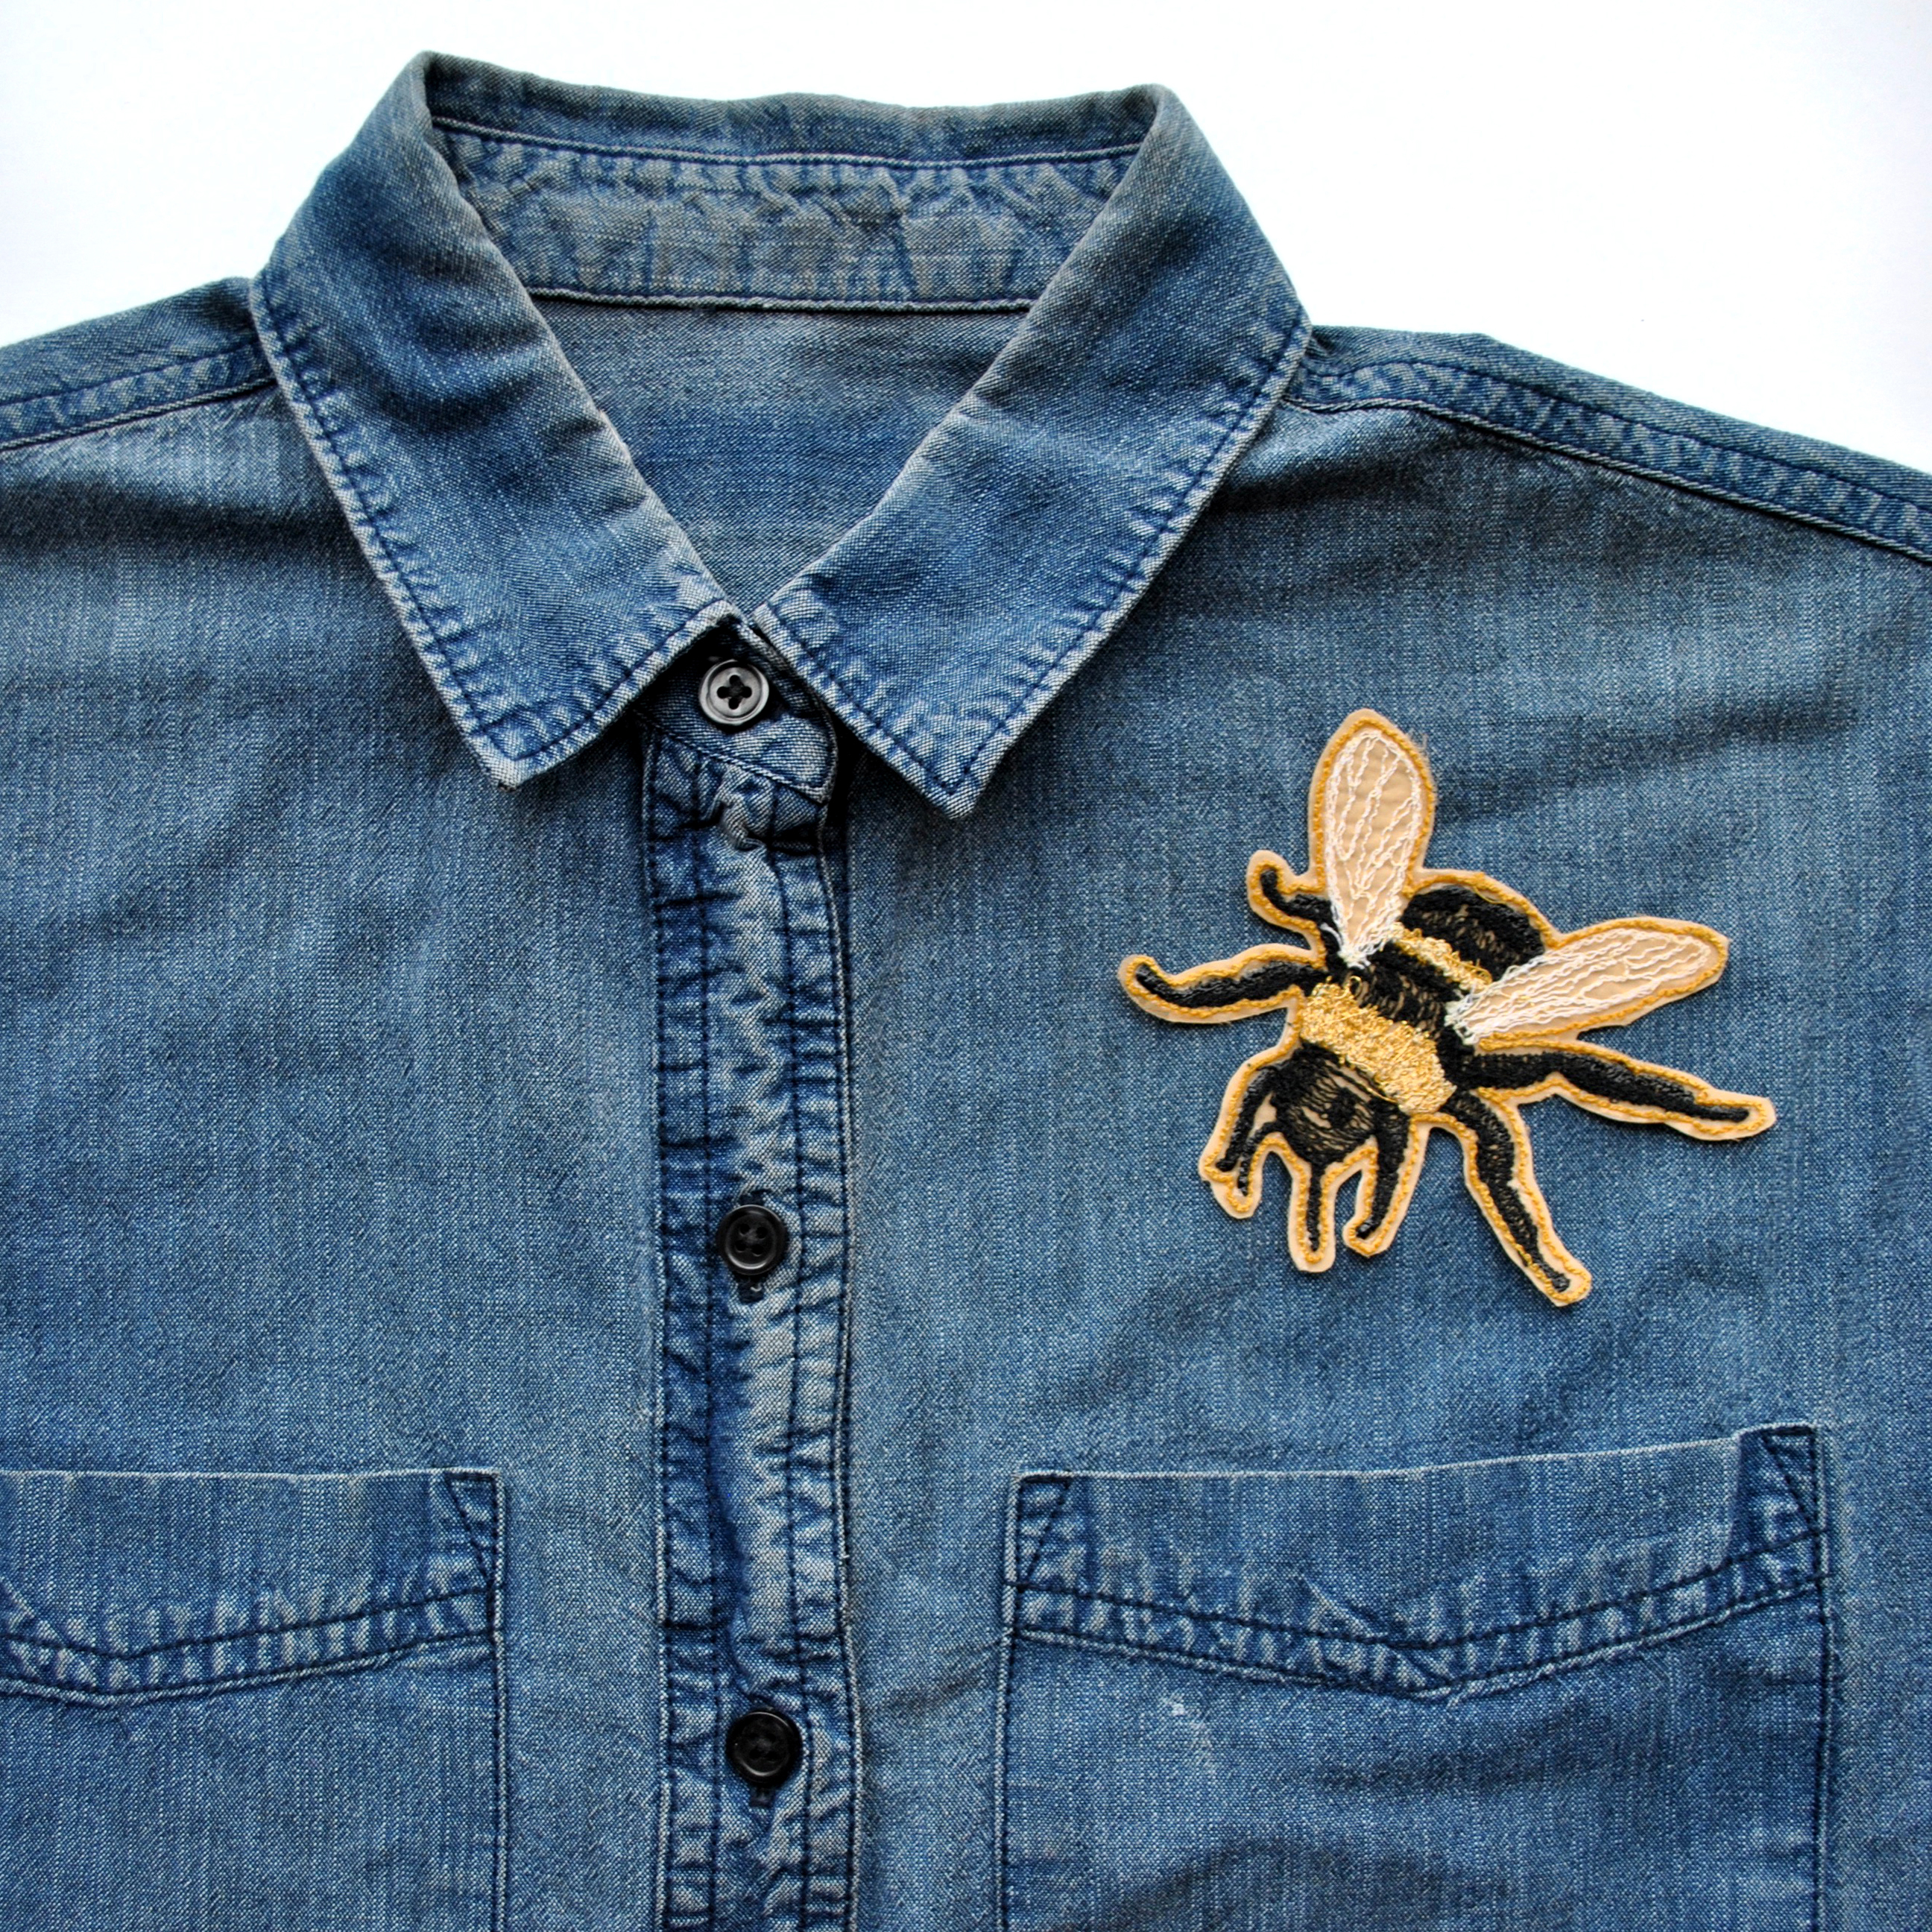 Iron-On Embroidered Bee Patch